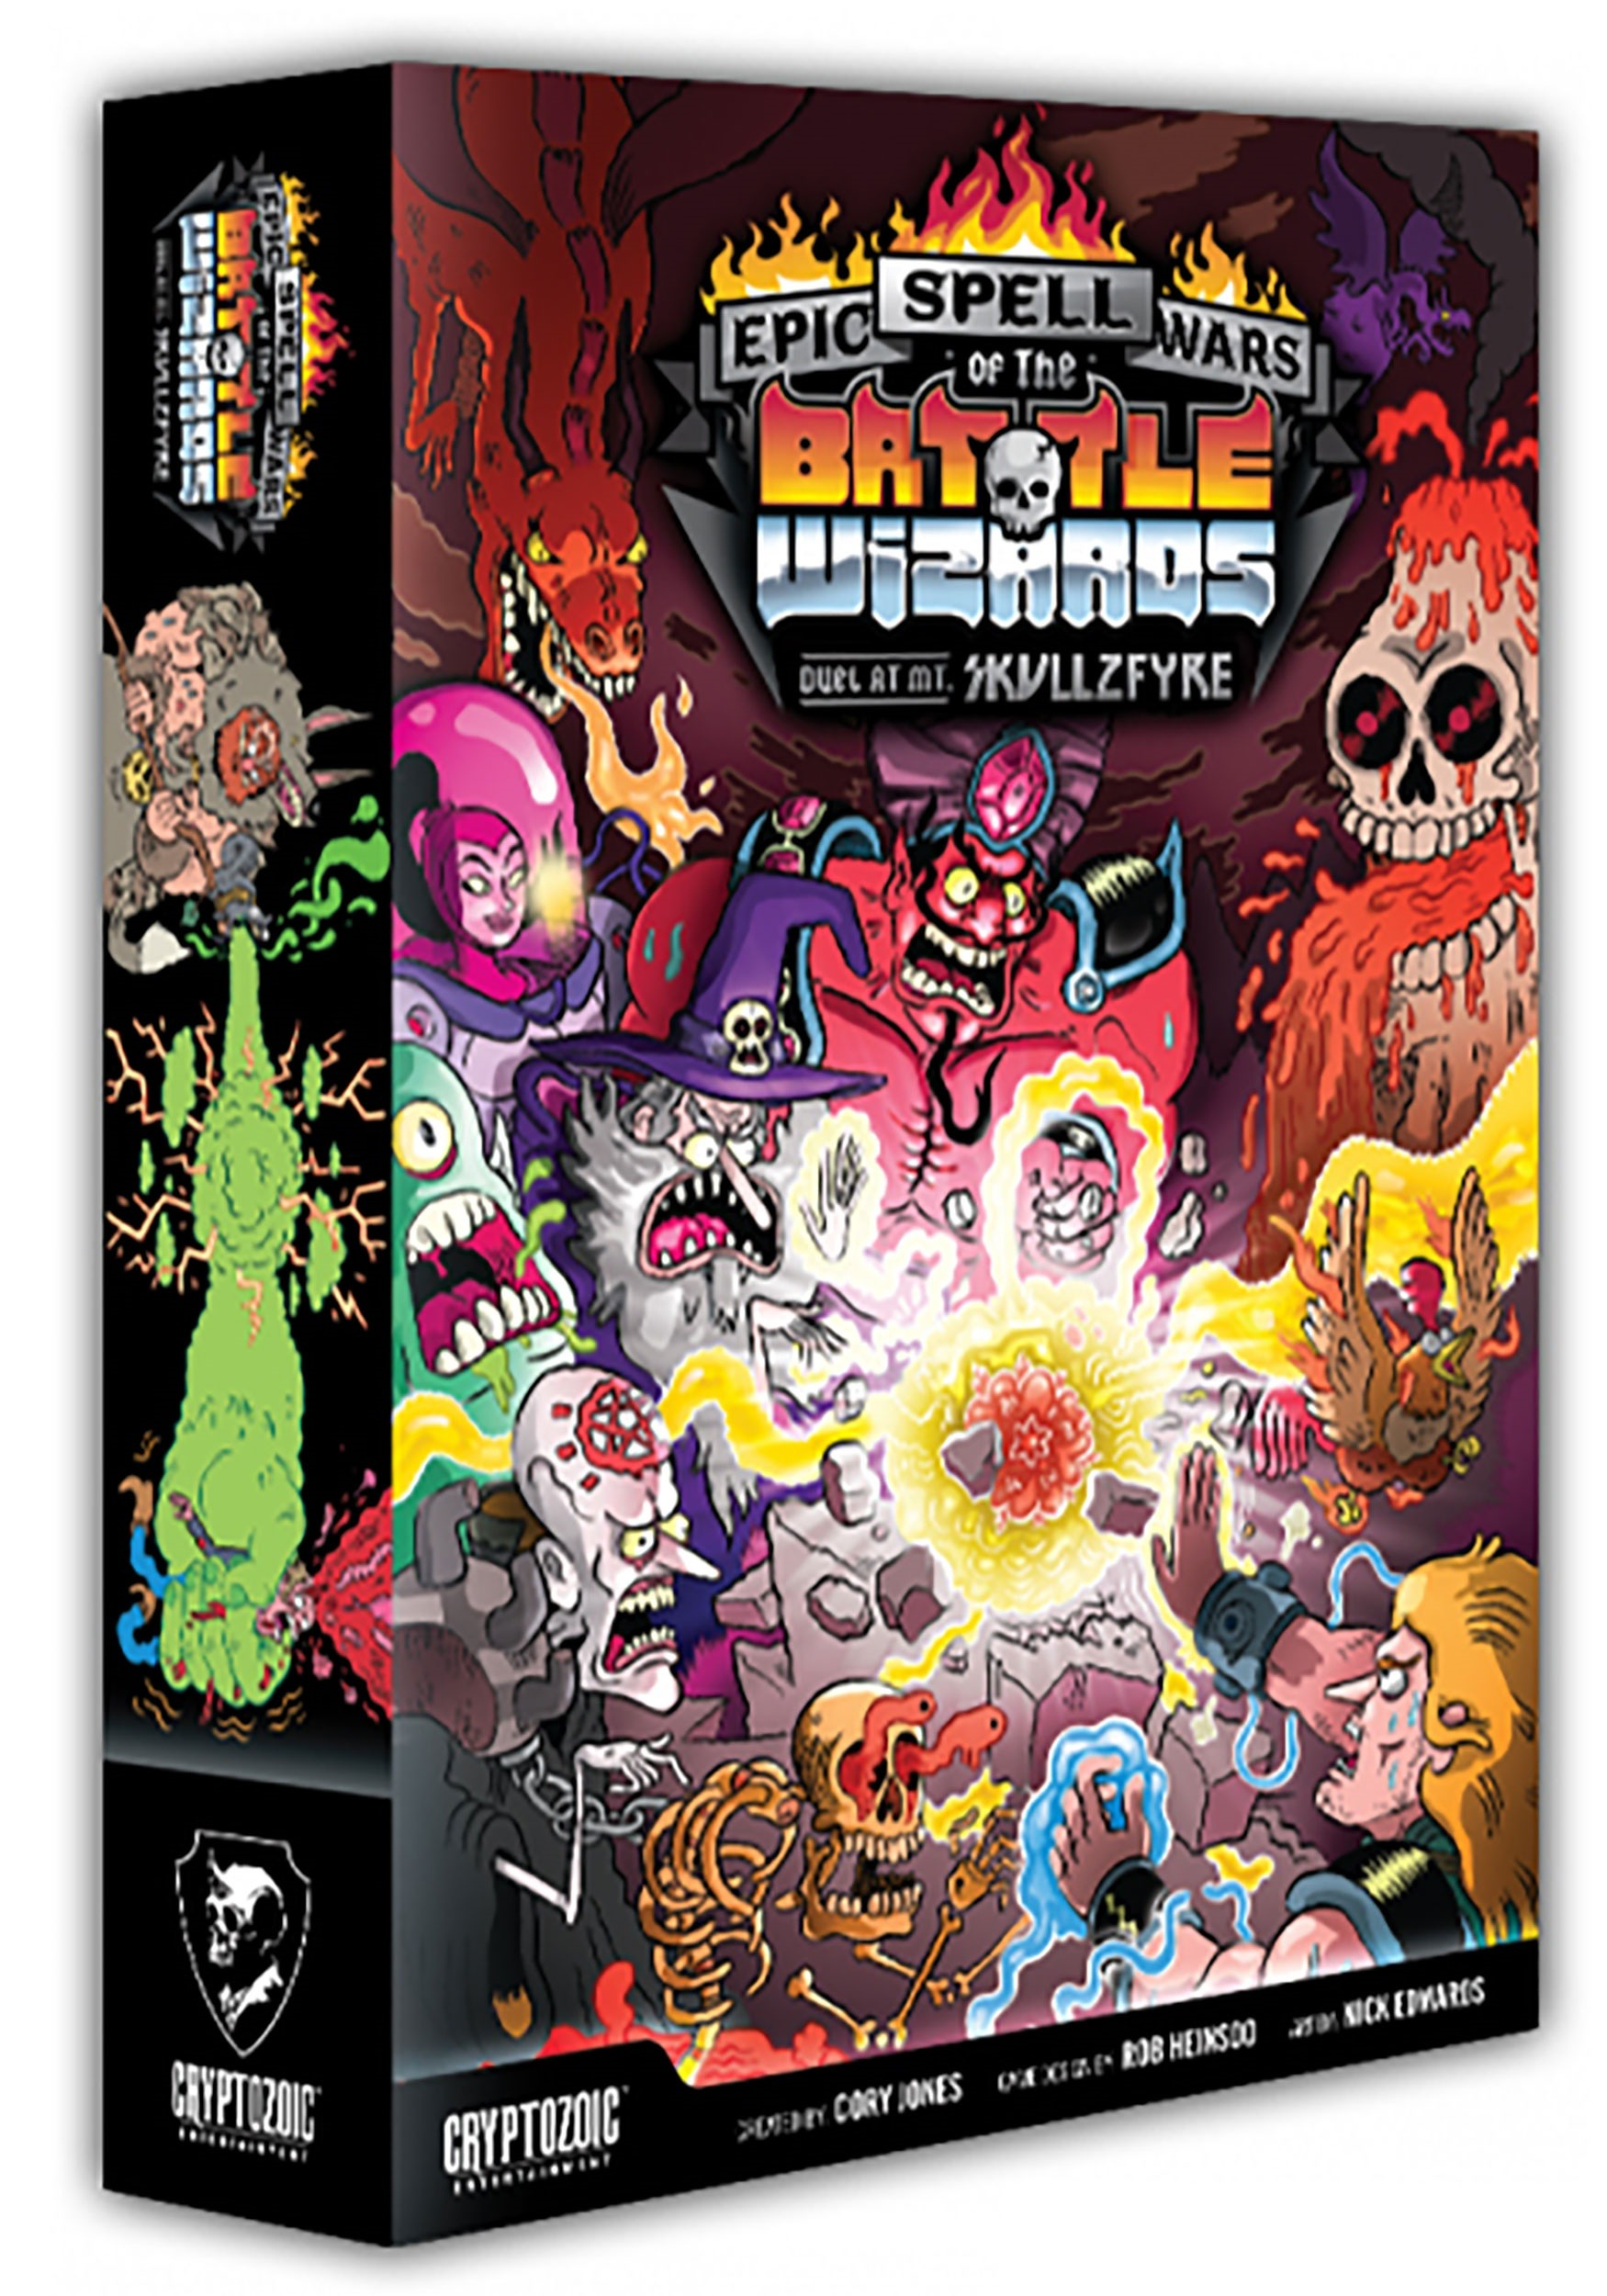 Duel_at_Mount_Skull:_Epic_Spell_Wars_of_the_Battle_Wizards_Game